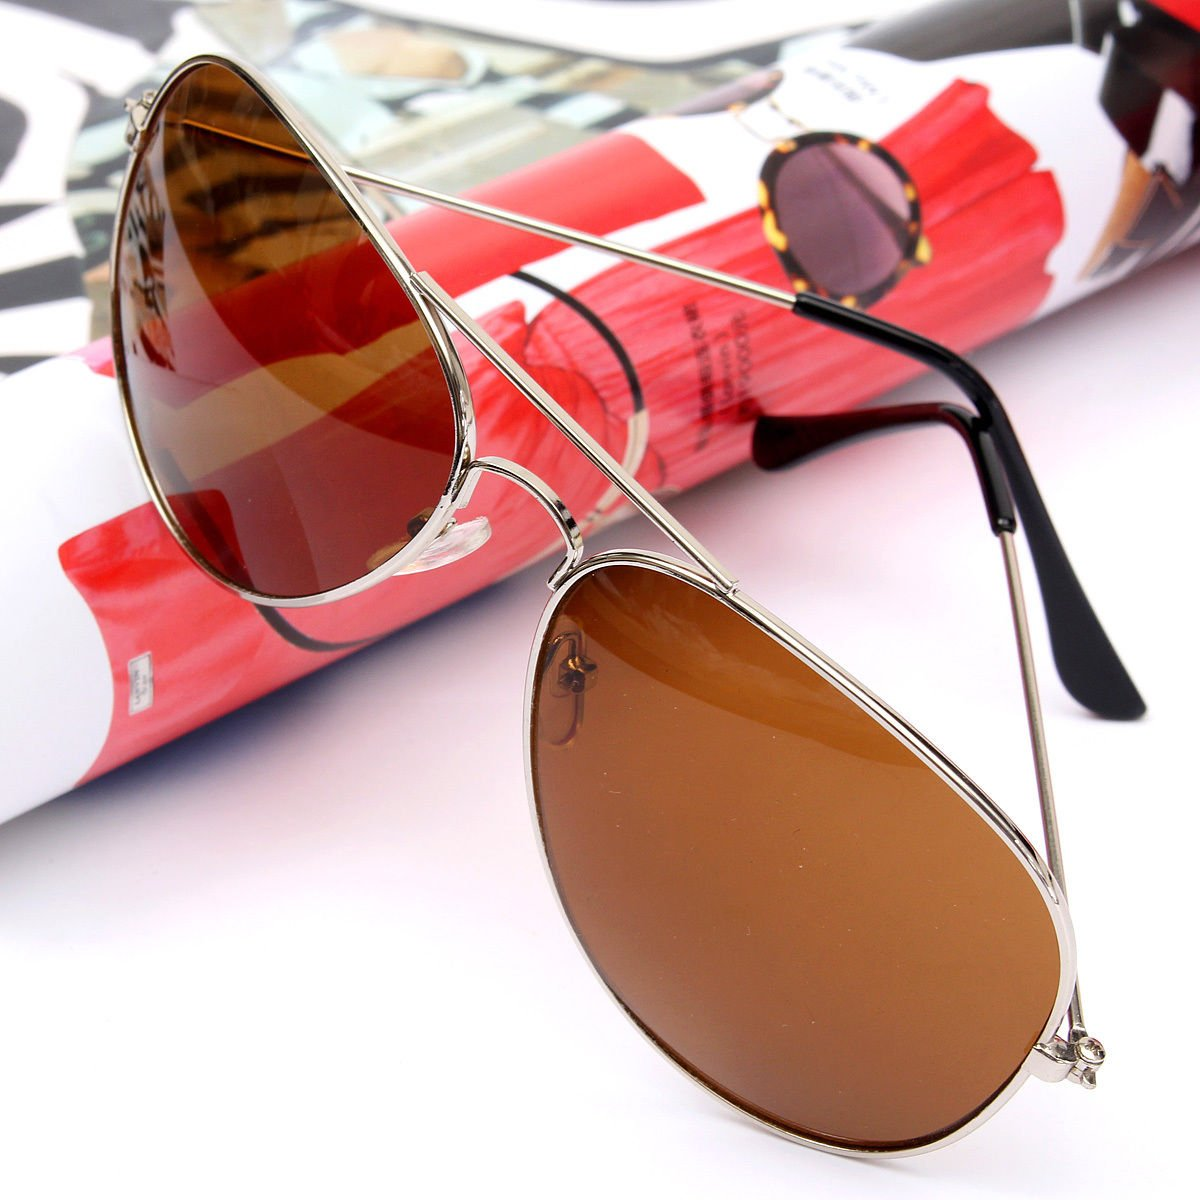 Silver Frame /& Brown Lens Unisex Women Men Vintage Retro Fashion Aviator Mirror Lens Sunglasses Glasses US